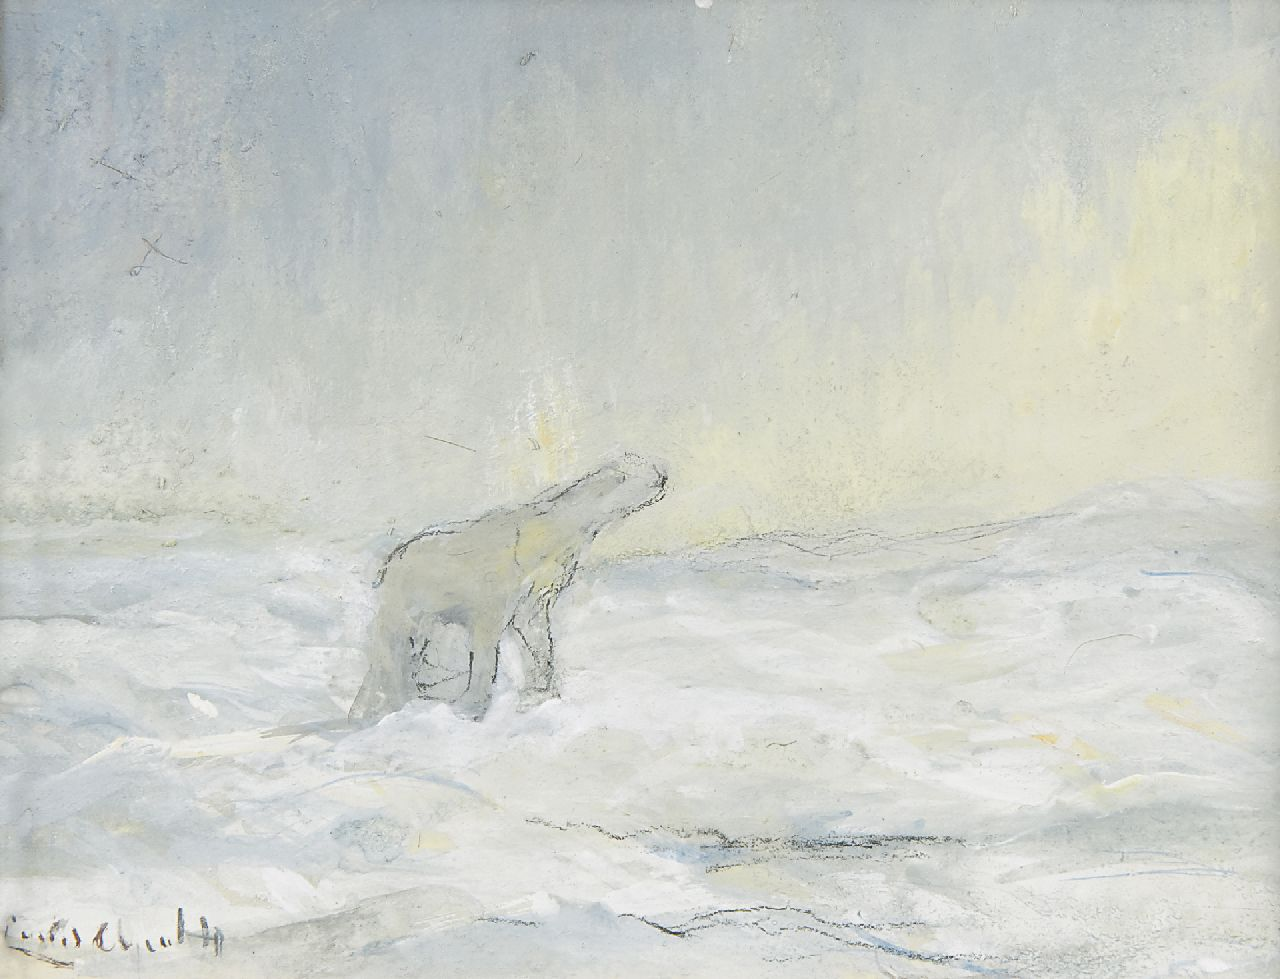 Apol L.F.H.  | Lodewijk Franciscus Hendrik 'Louis' Apol, A polar bear on the North Pole, gouache on paper 10.9 x 14.3 cm, signed l.l. and executed in 1935-1936